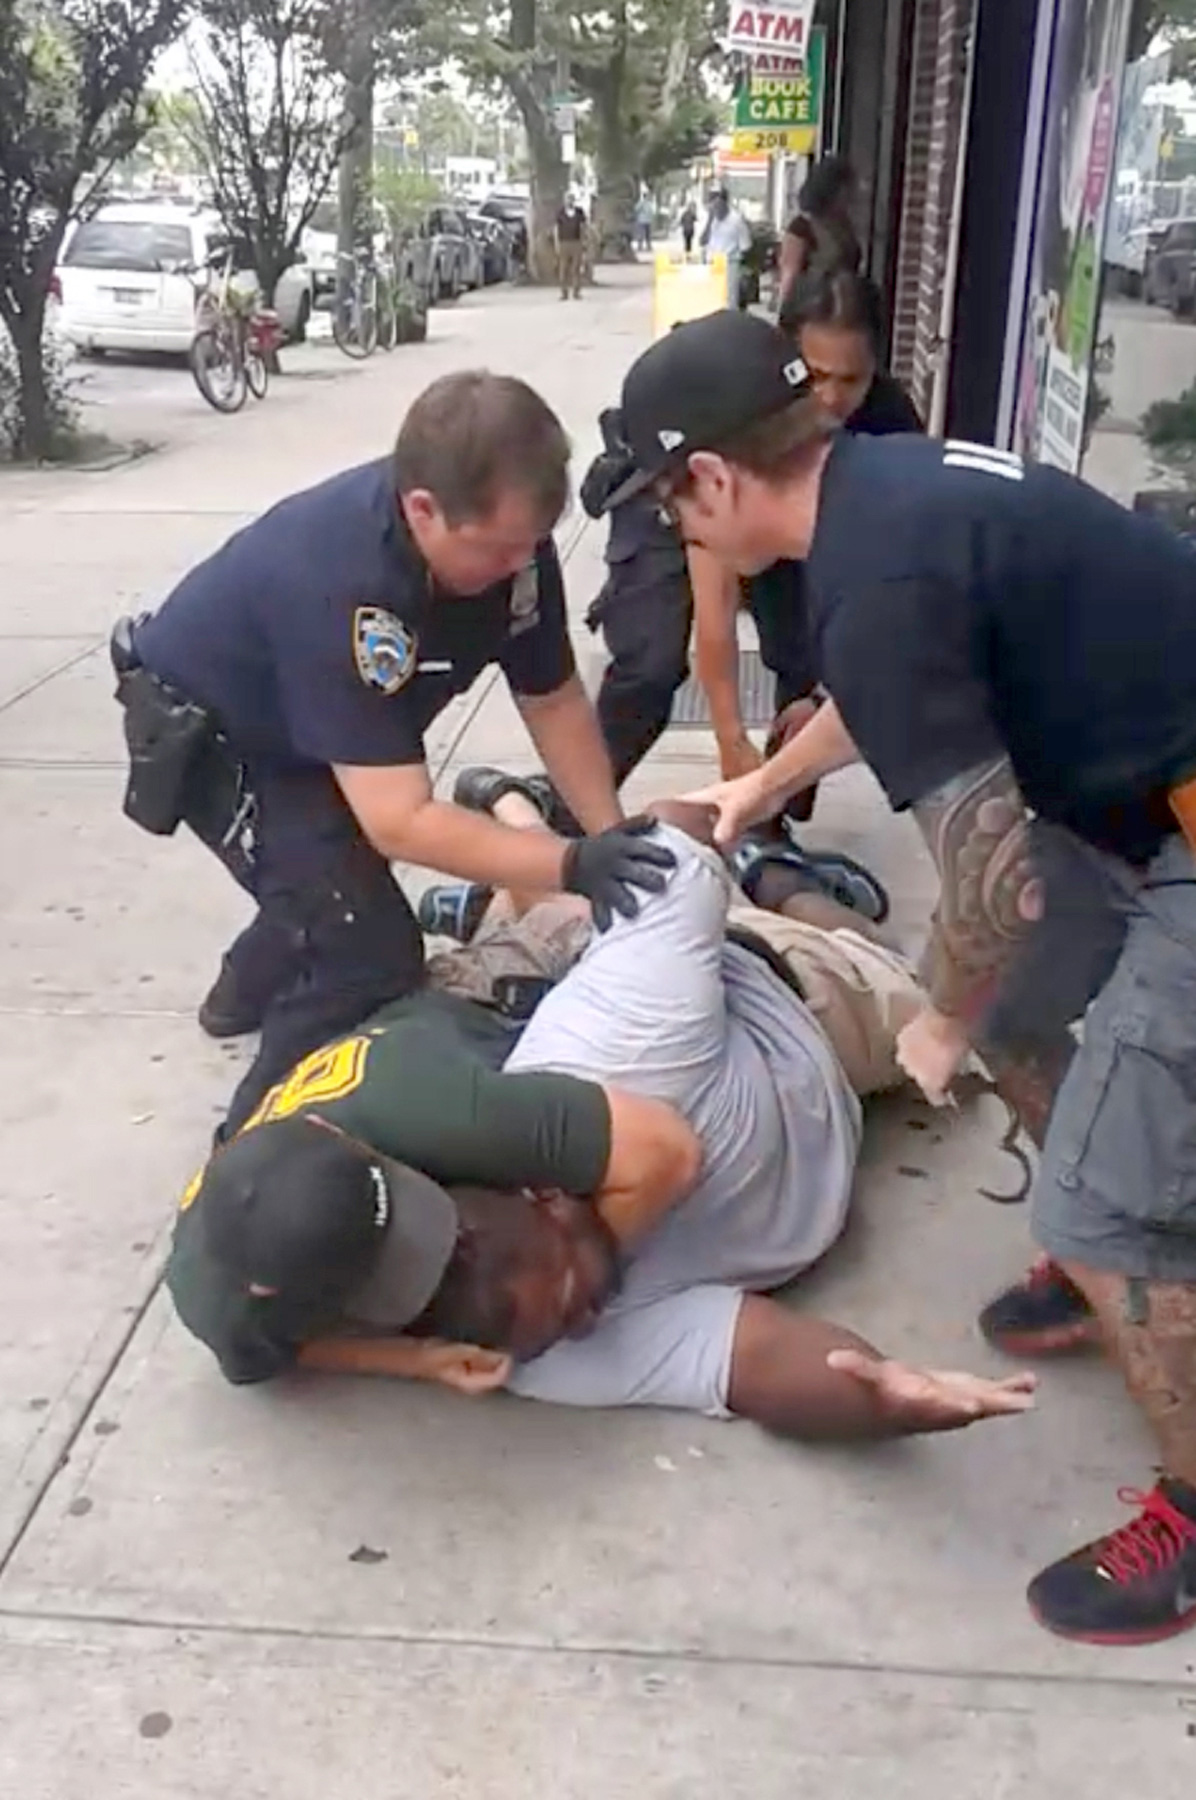 A 400 pound asthmatic Eric Garner died while being arrested by police in Staten Island. July 17, 2014.